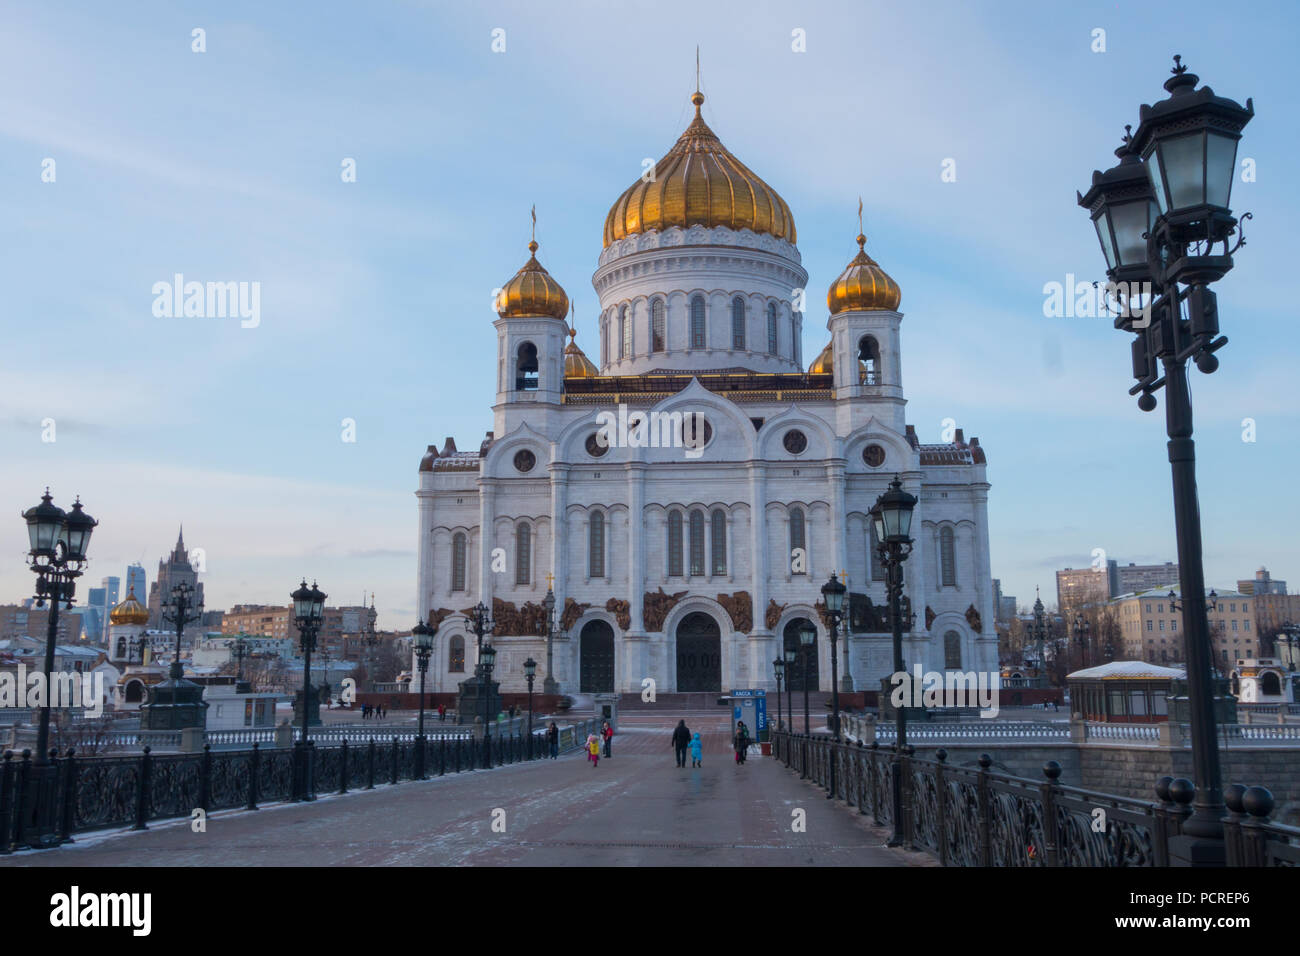 Orthodox church in Moscow, Russia with golden domes and white walls. Street lights in the foreground. Tourists walking towards building. Stock Photo